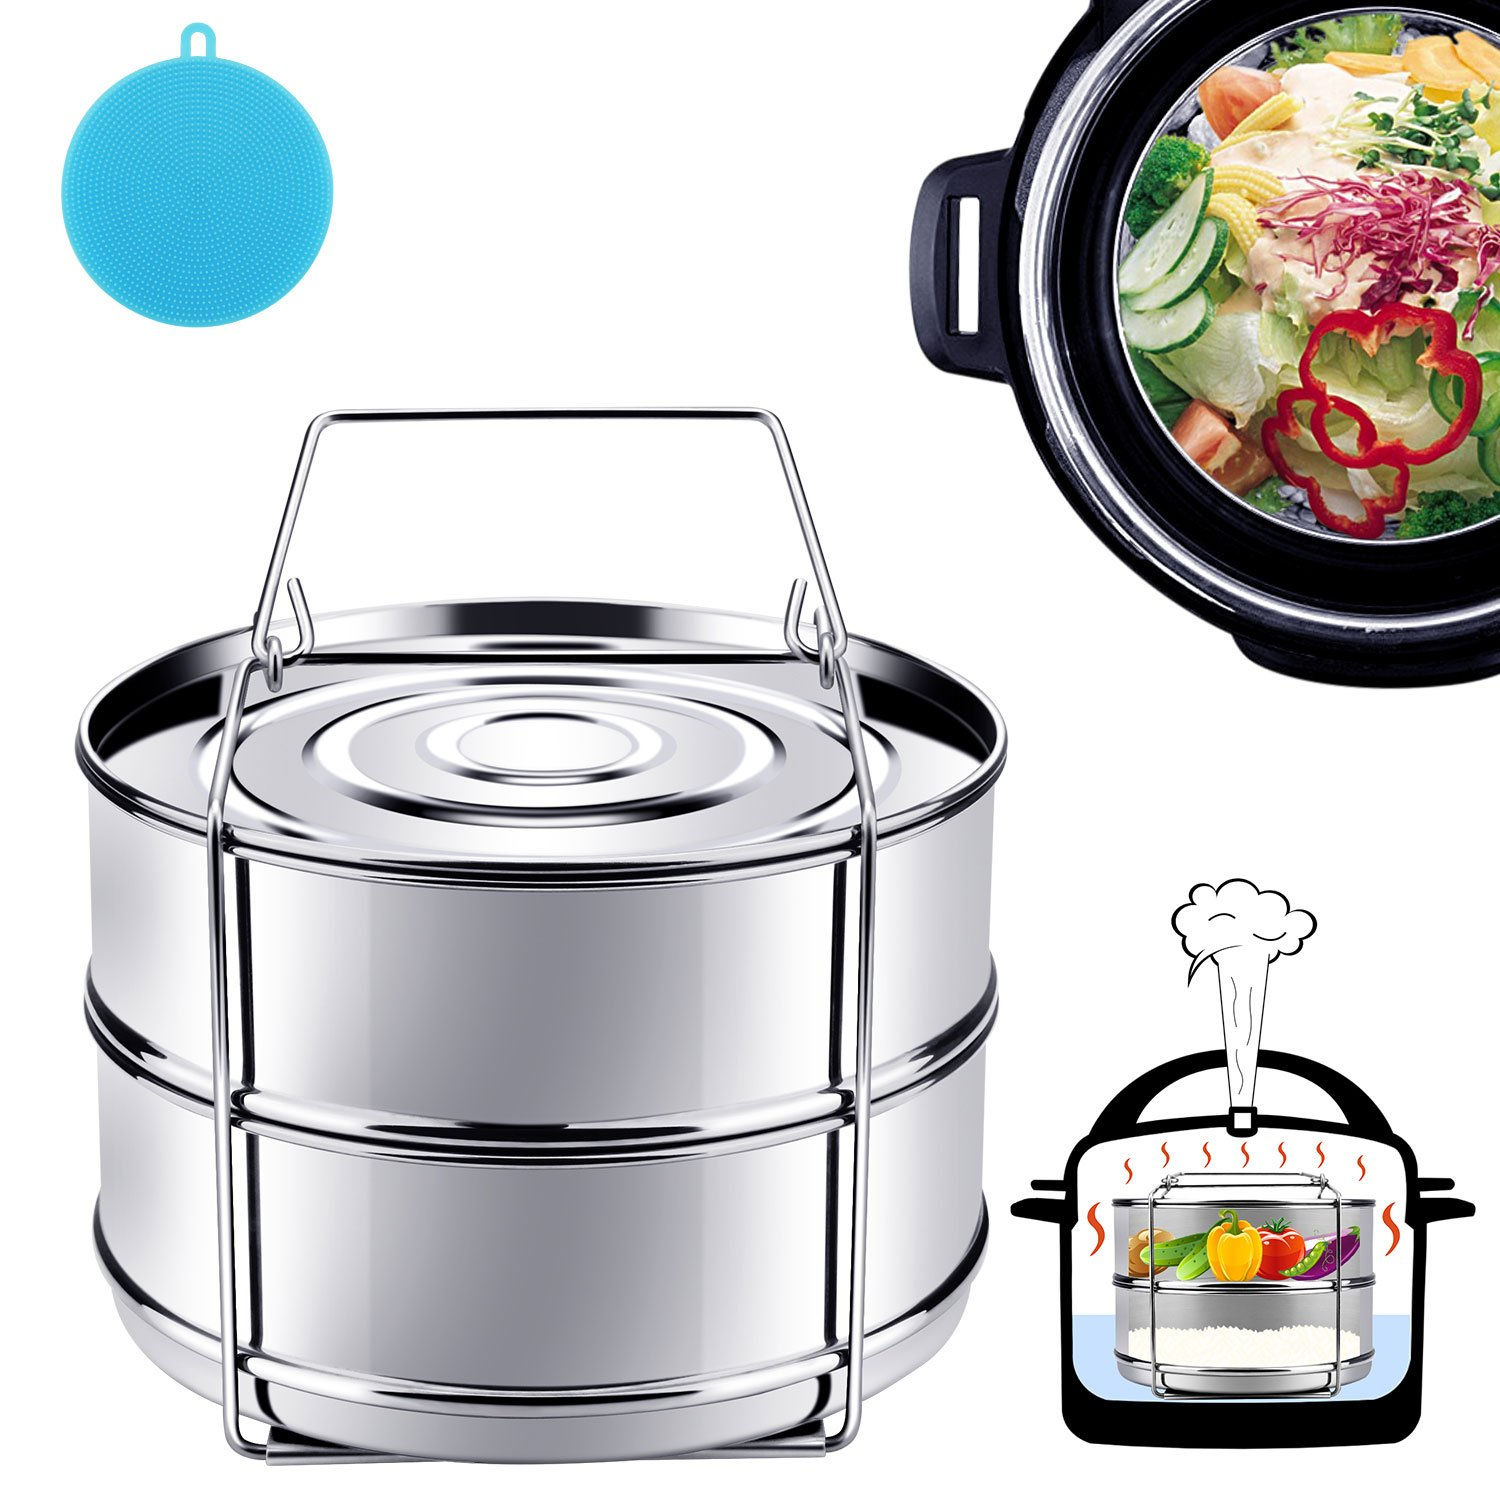 Instant Pot Accessories, Steamer Insert Pans for 6qt/8qt Pressure Cooker, BBing Stackable Stainless Steel Vegetable Steamer with Sling